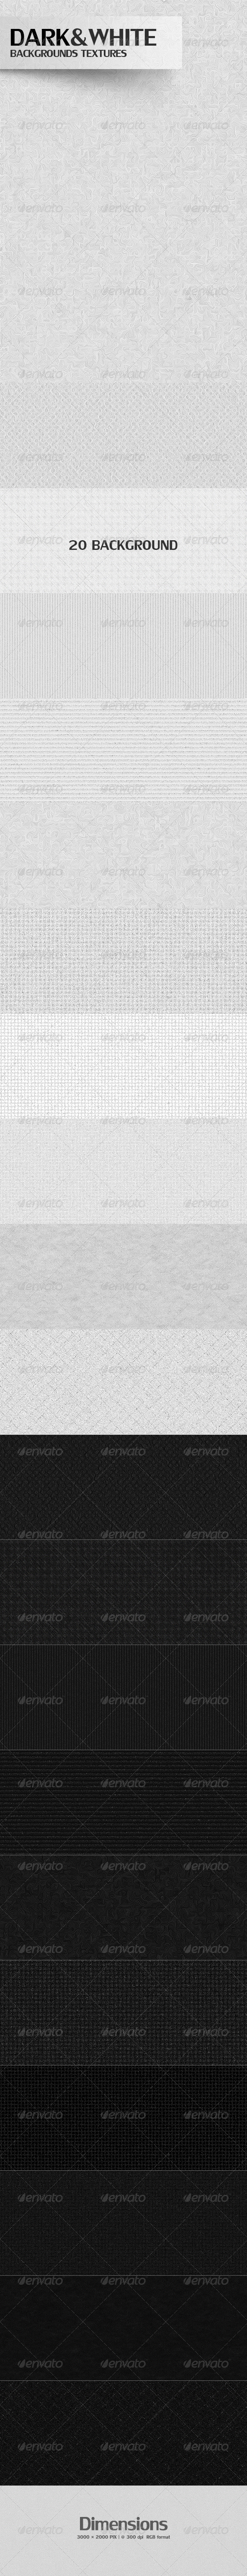 White & Dark Backgrounds Textures - Patterns Backgrounds